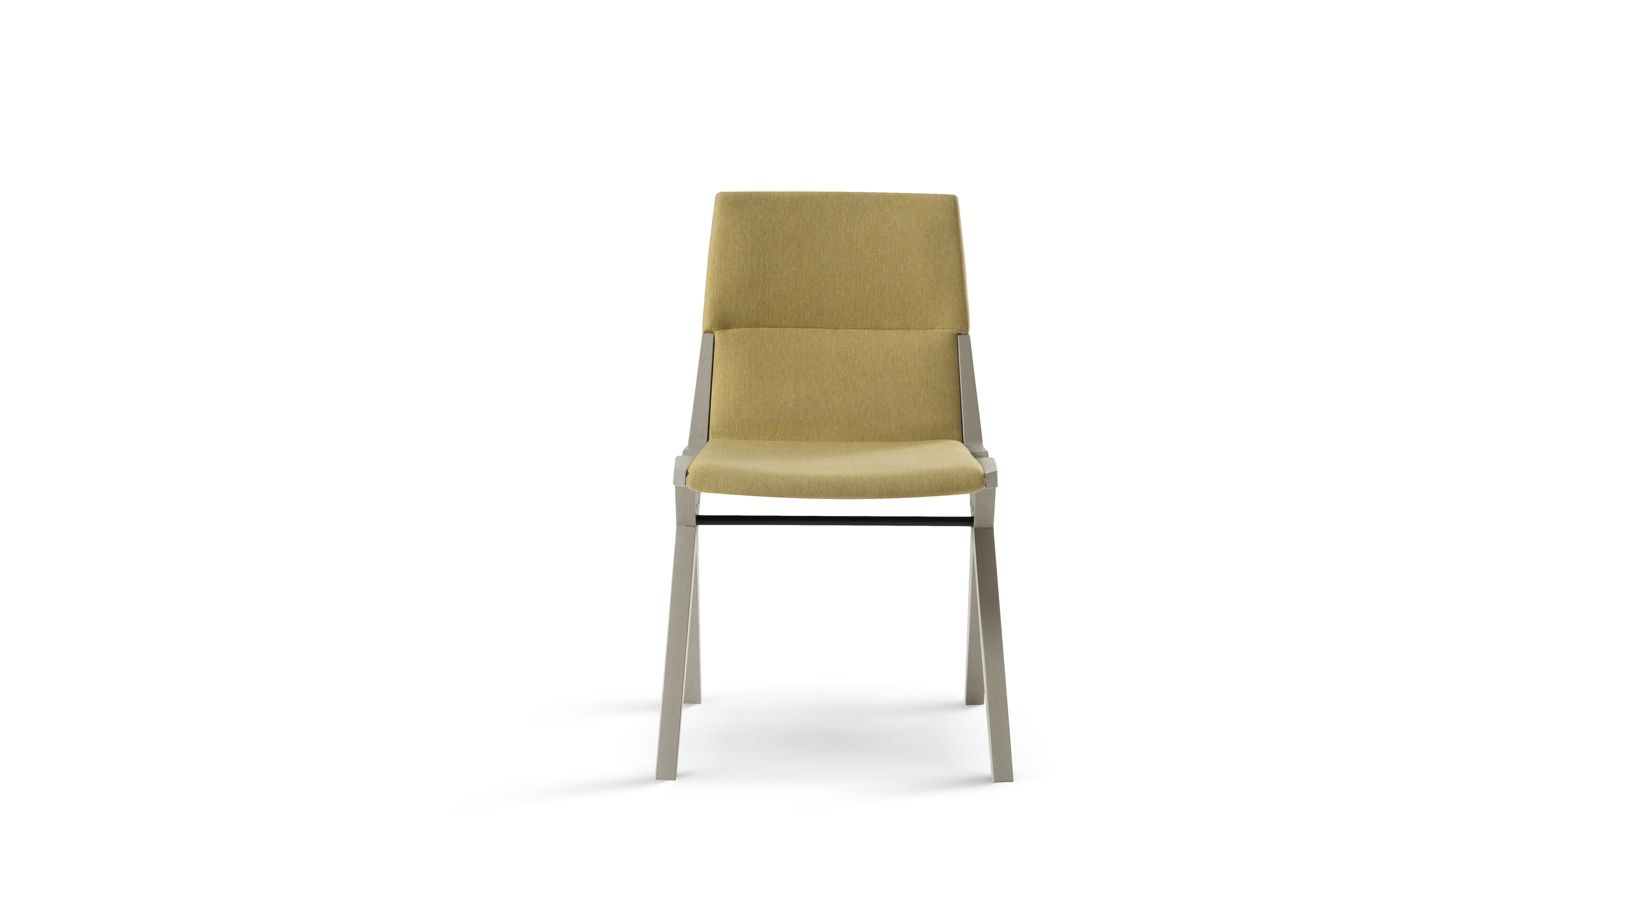 Ixilon chair roche bobois for Chaise roche bobois